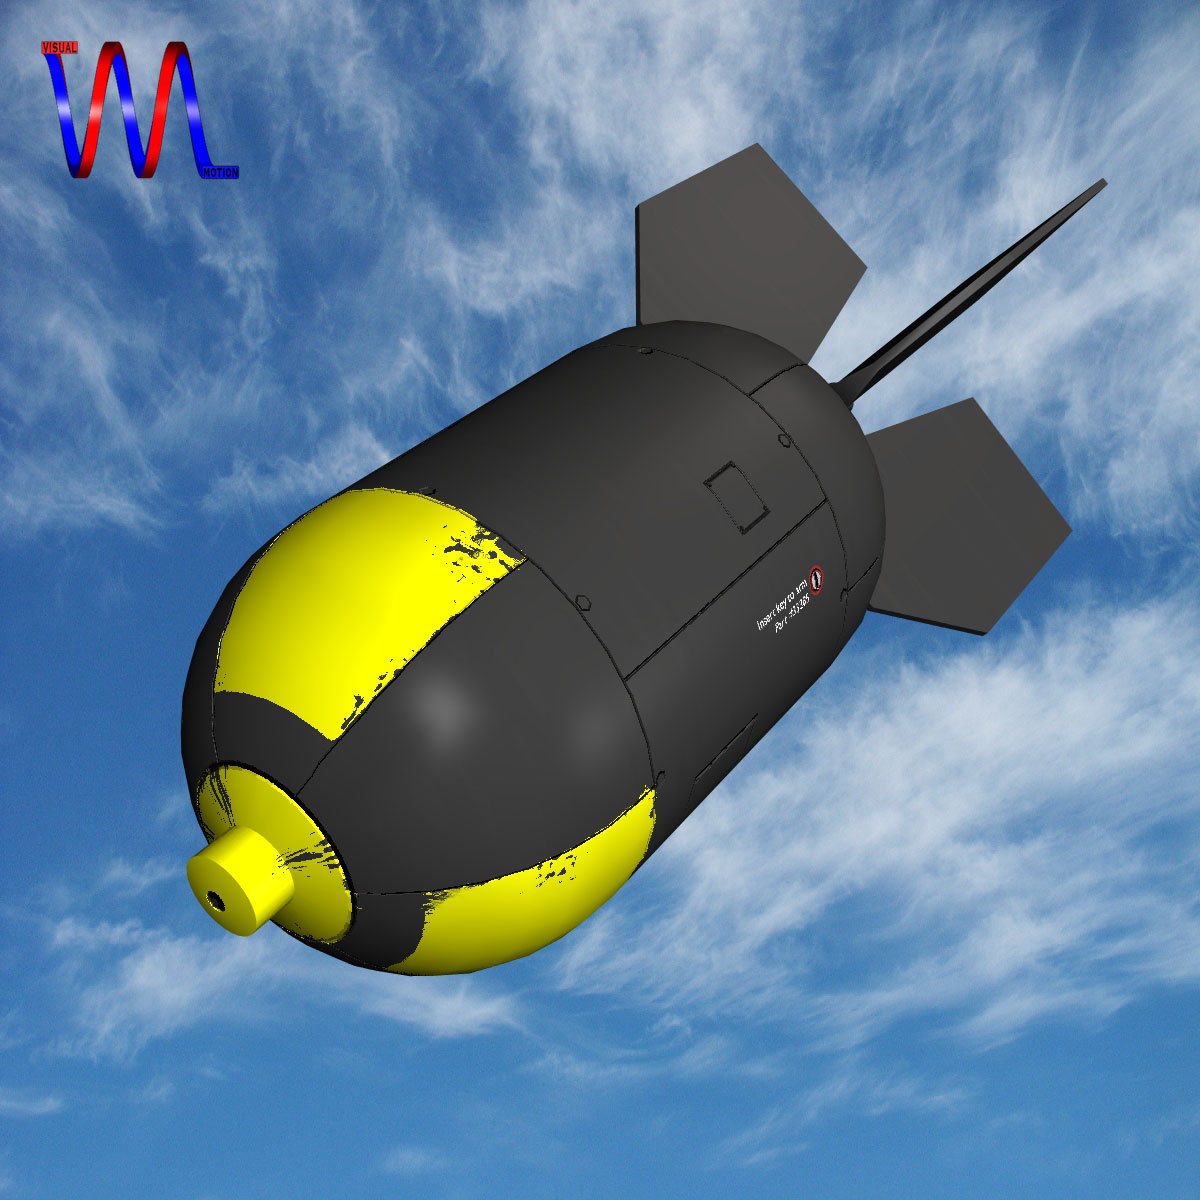 nuclear schemed bomb 3d model 3ds dxf fbx blend cob dae x obj 162653